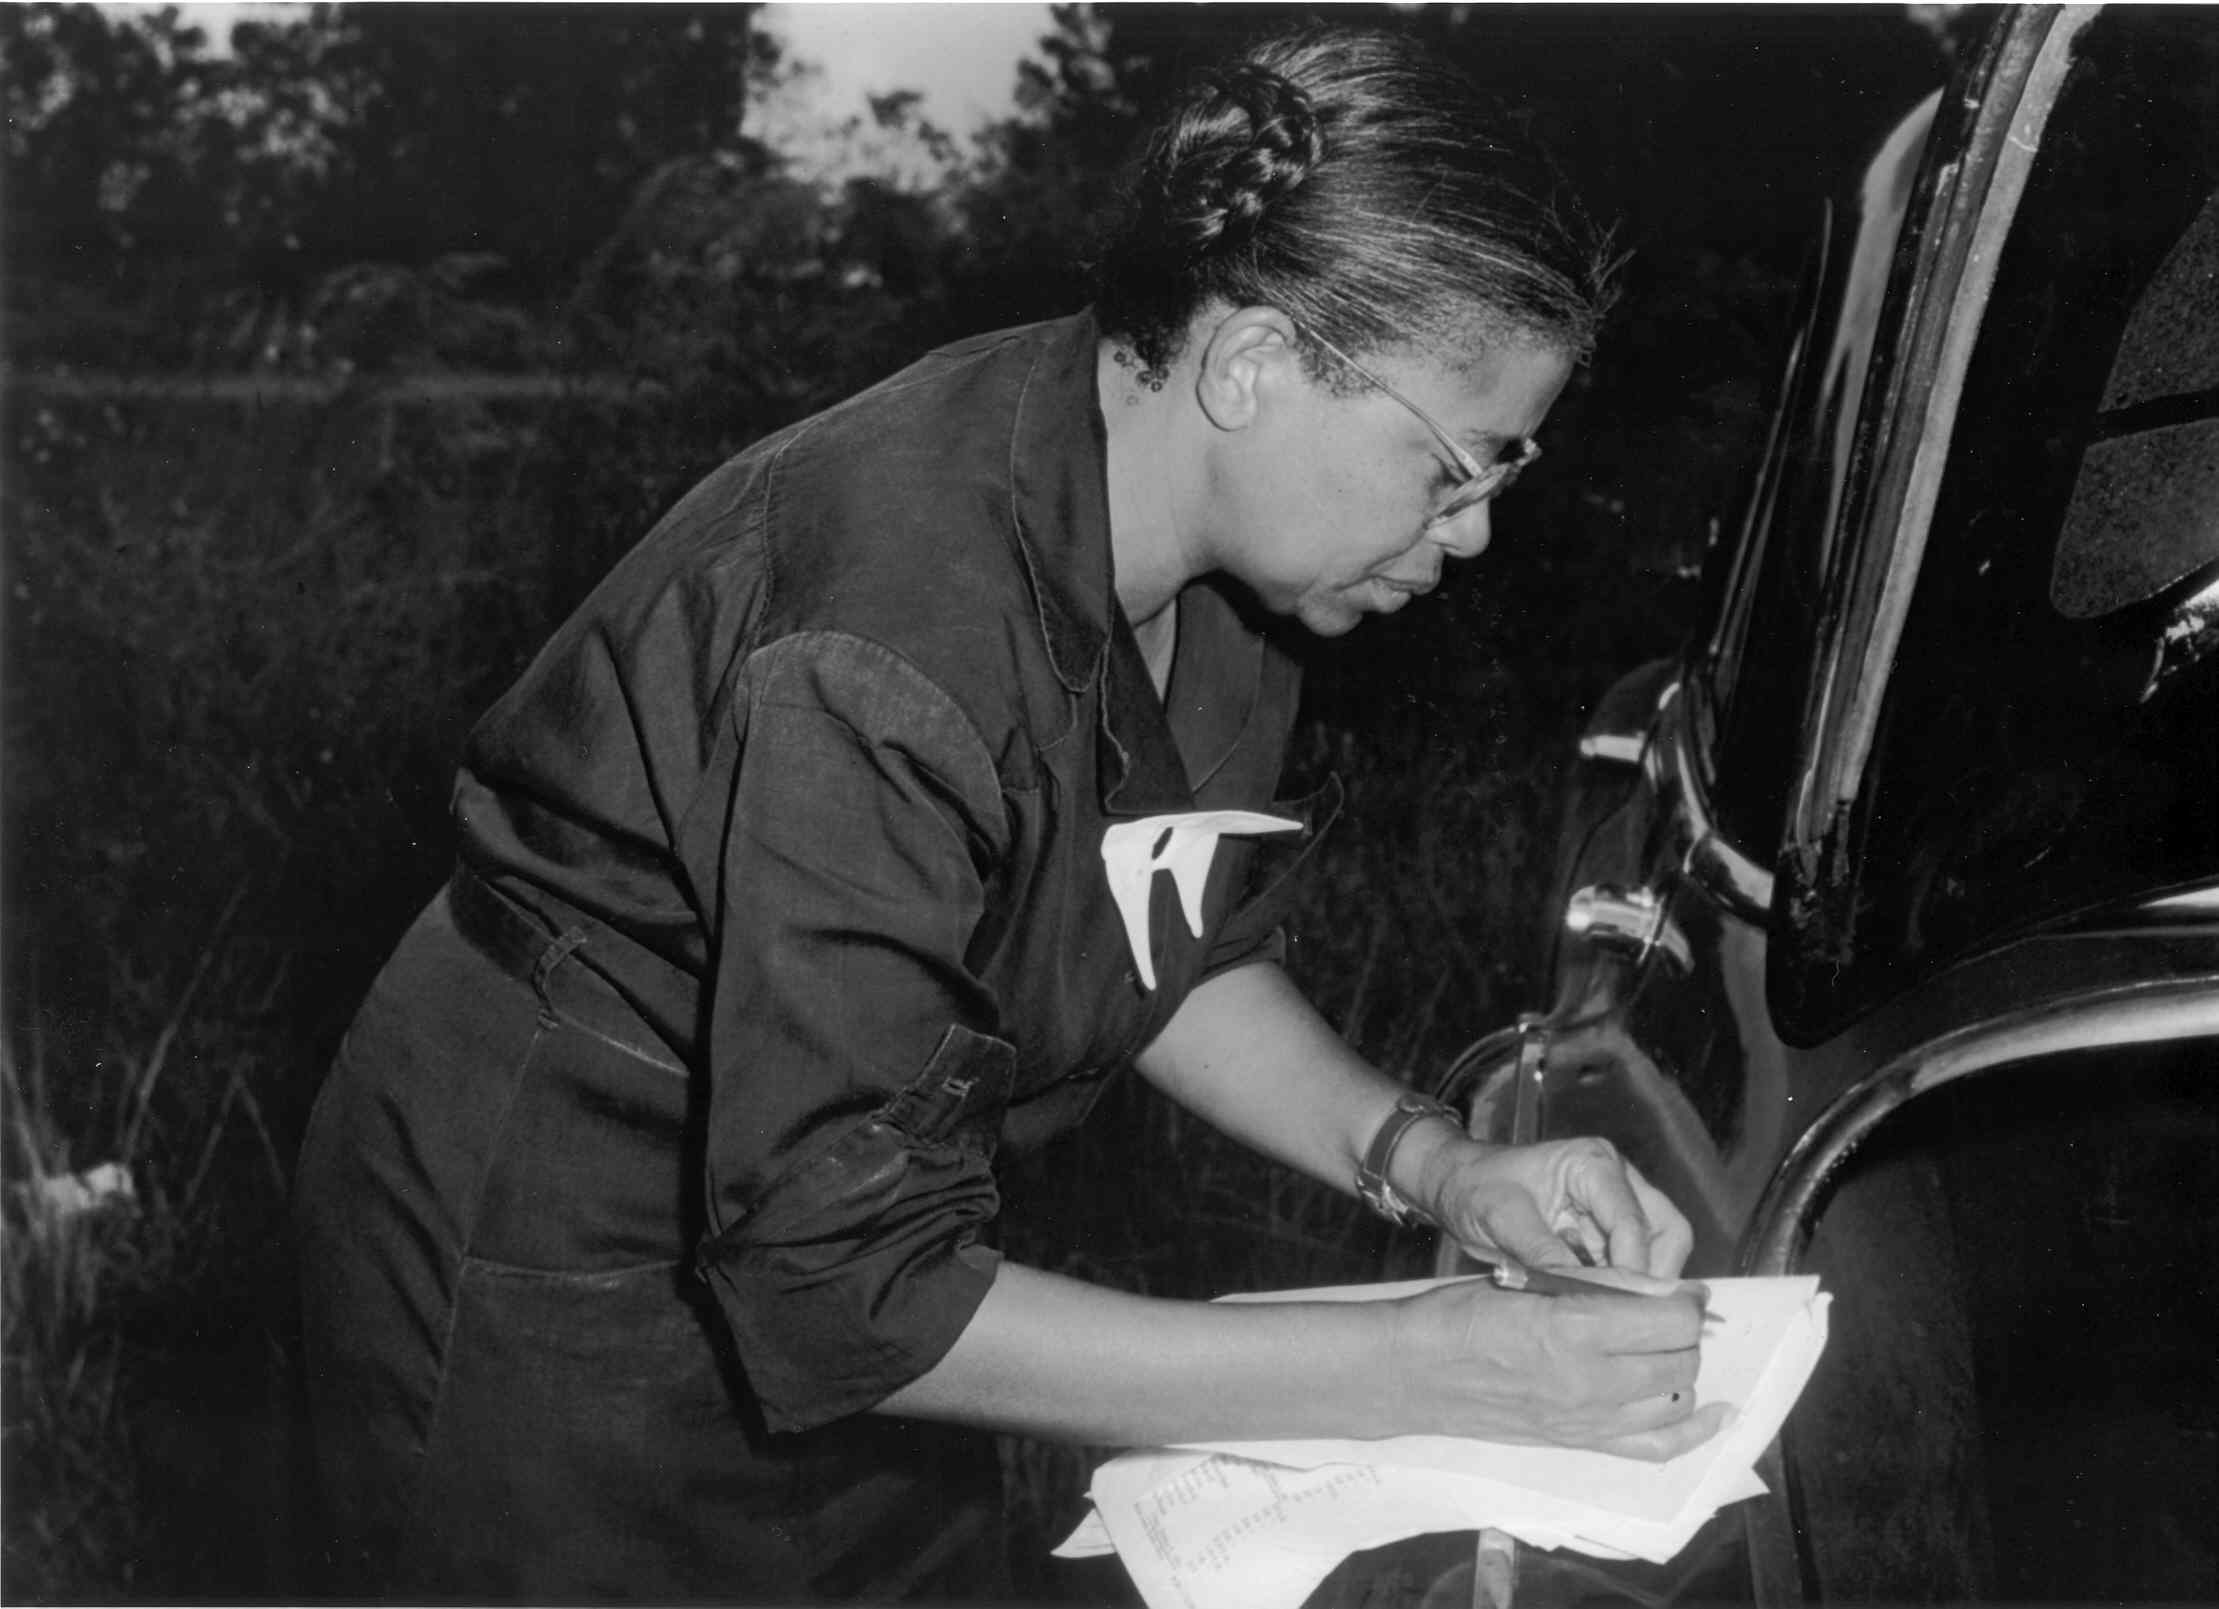 Nurse Eunice Rivers filling out paper work  Image courtesy of National Archives, Atlanta, GA